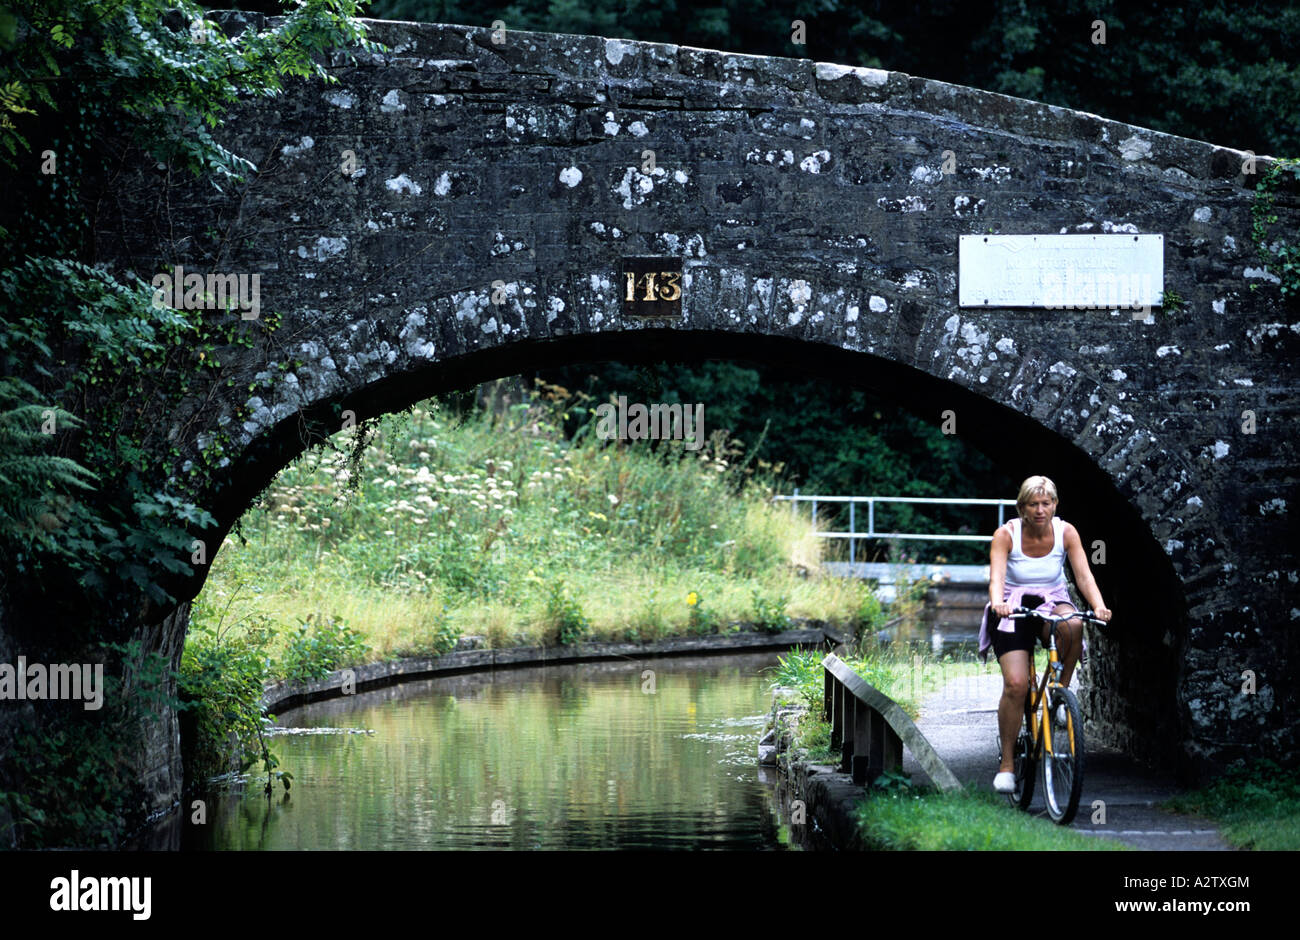 Cyclists on towpath on the Monmouthshire & Brecon canal at Talybont-on-Usk, Brecon, Powys, Wales, GB - Stock Image